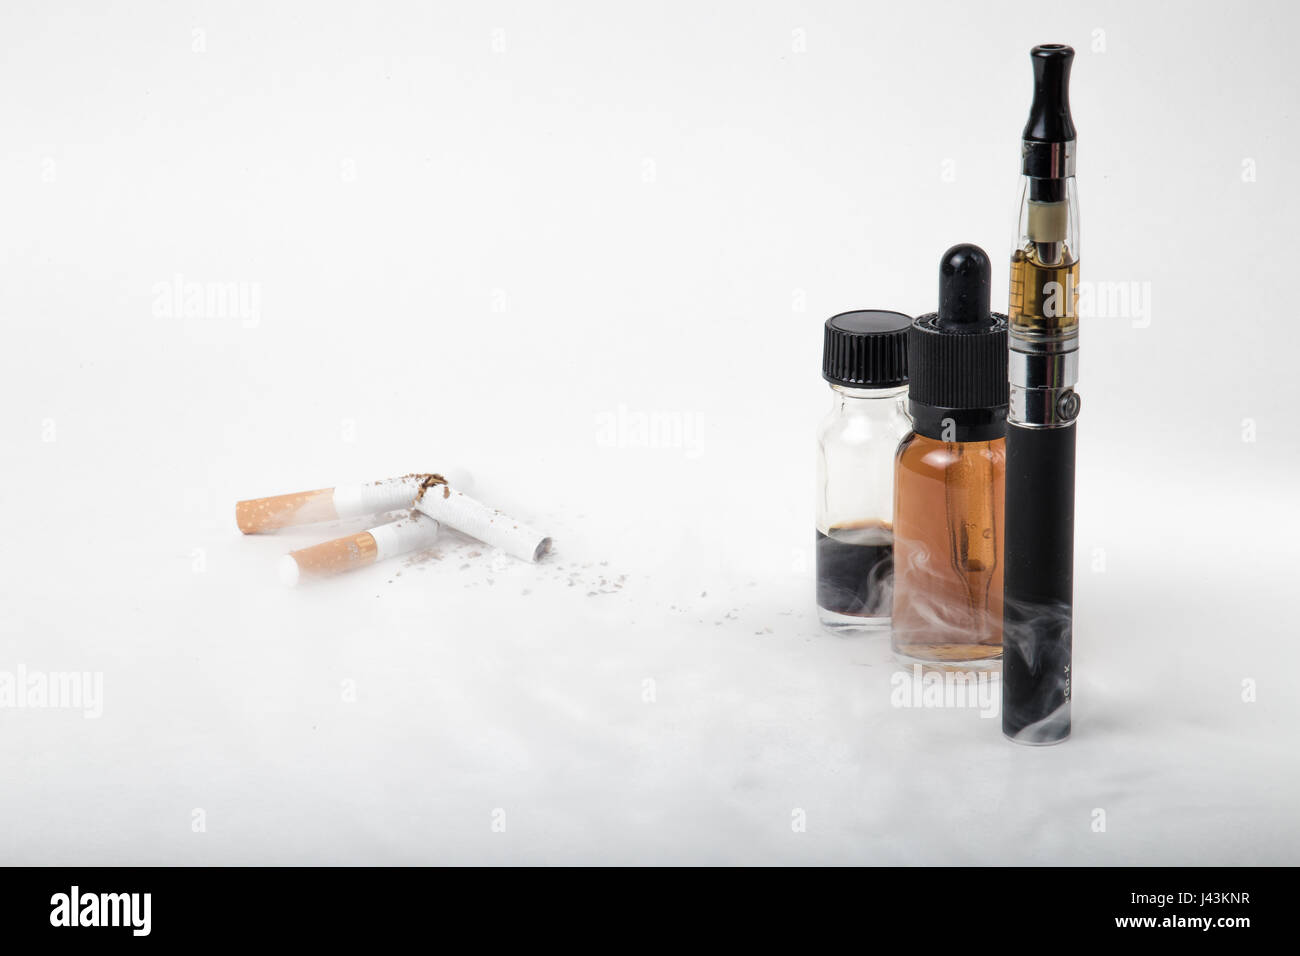 Electronic cigarette with 2 e-liquids and pile of broken tobacco smokes - Stock Image